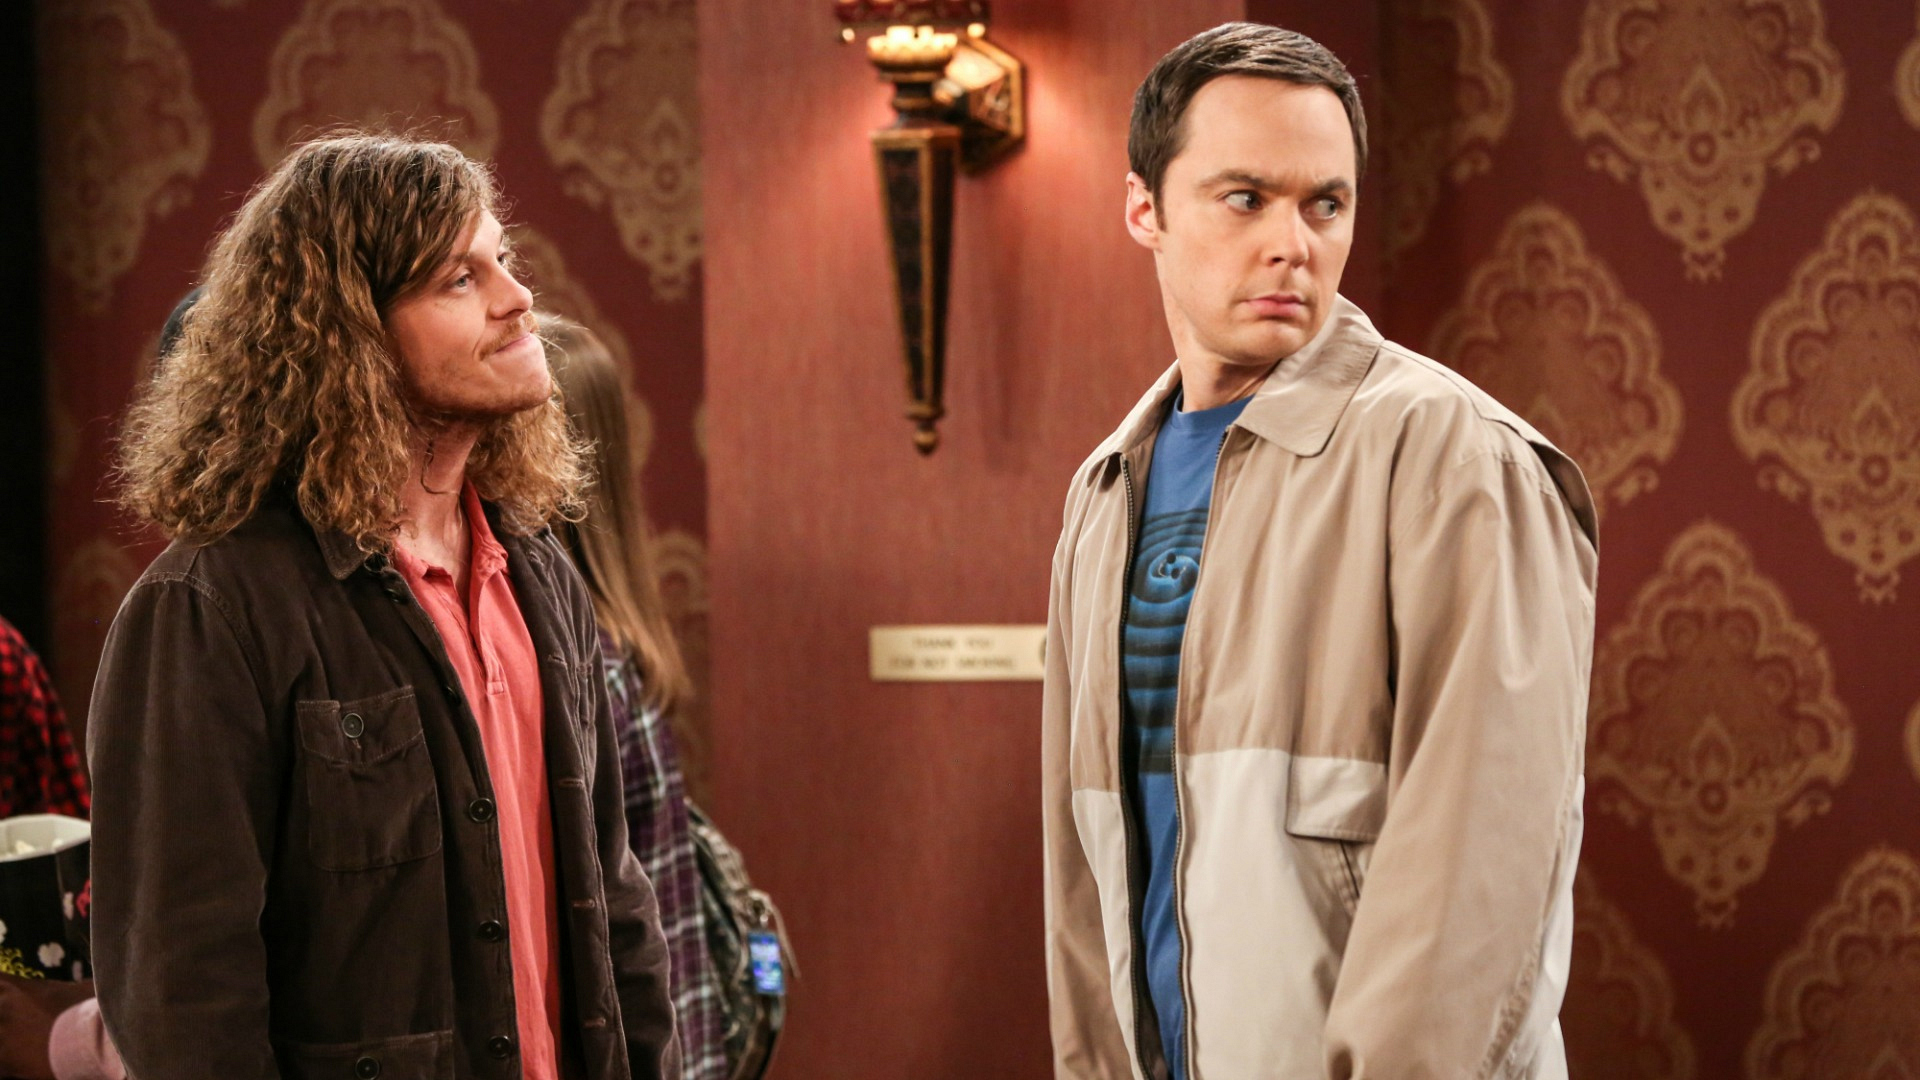 Sheldon looks for support during an argument with someone who cut the line.